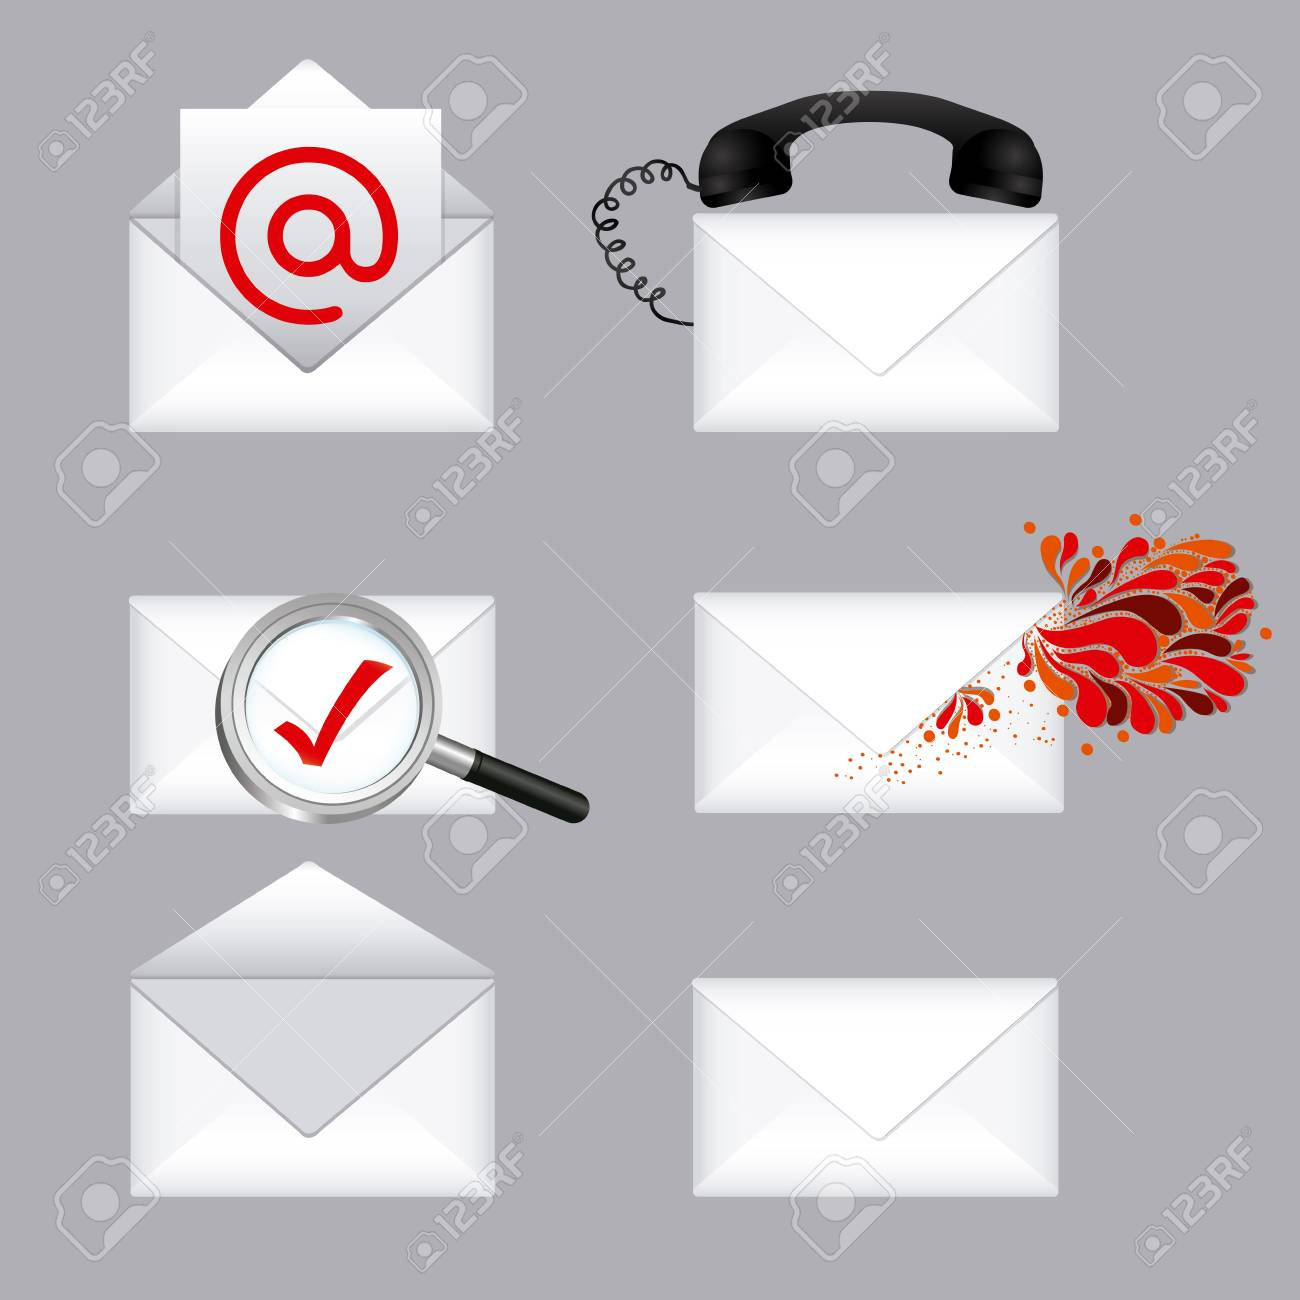 mail types over gray background illustration Stock Vector - 20983647